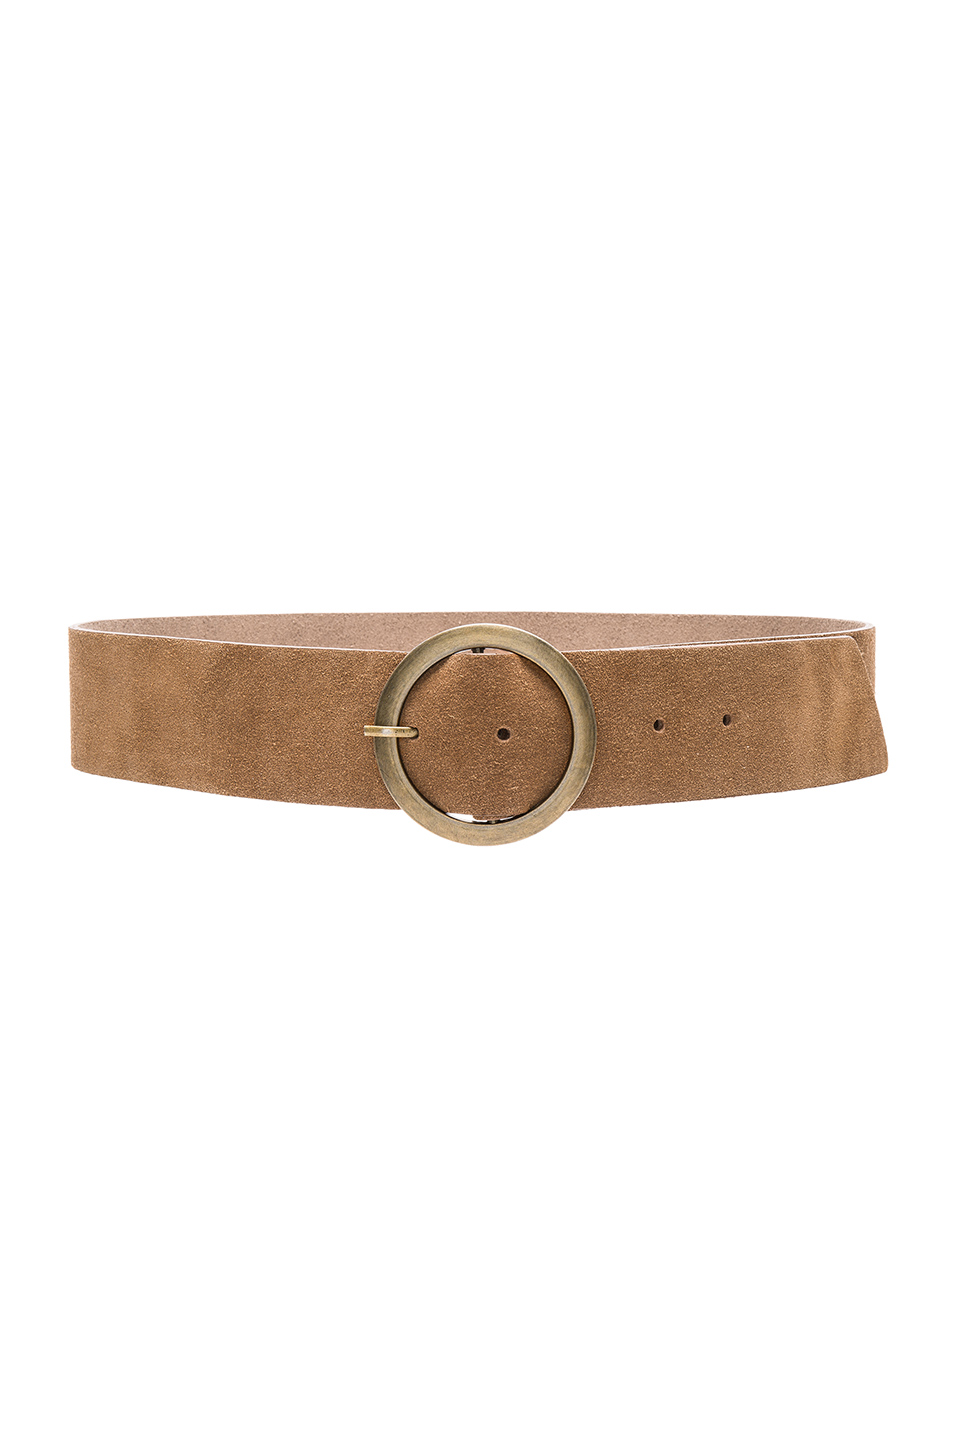 Lovers + Friends Mesa Belt in Whiskey